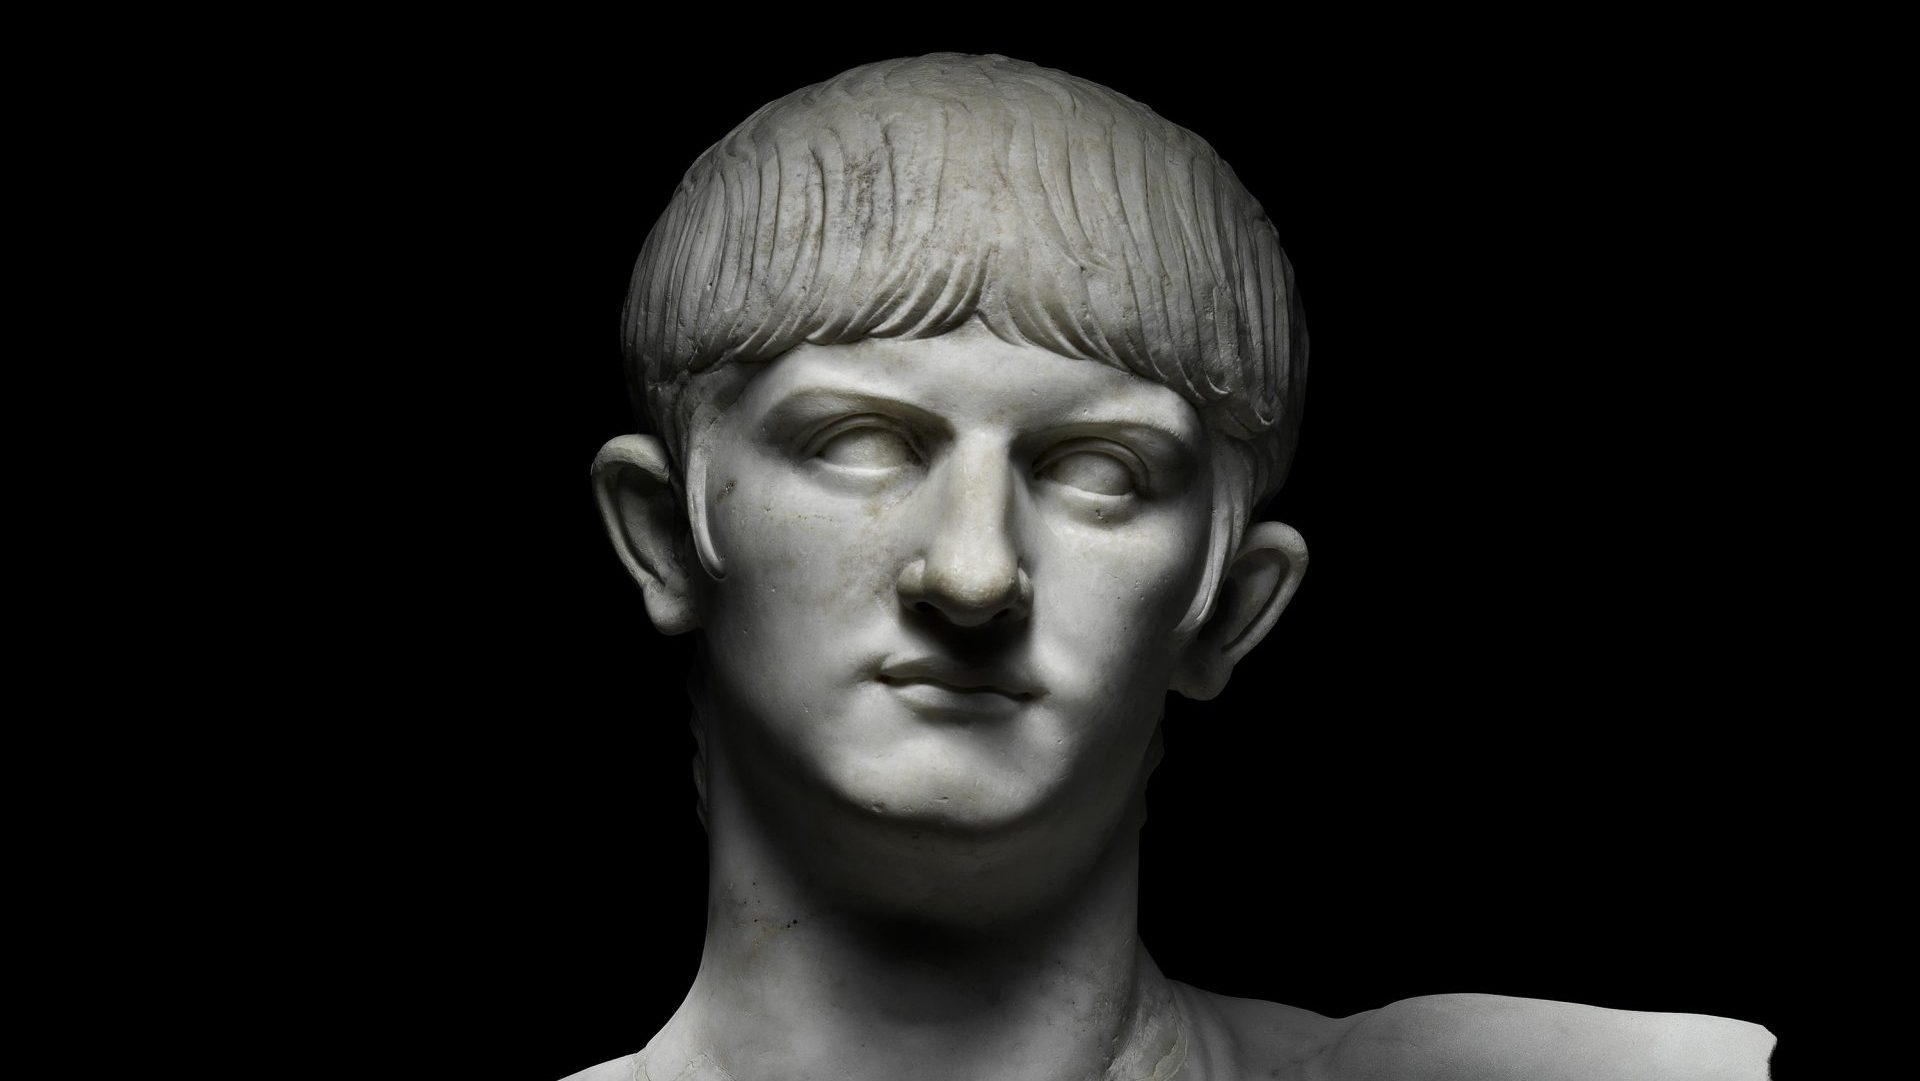 Marble bust of Nero. Italy, around AD 55.